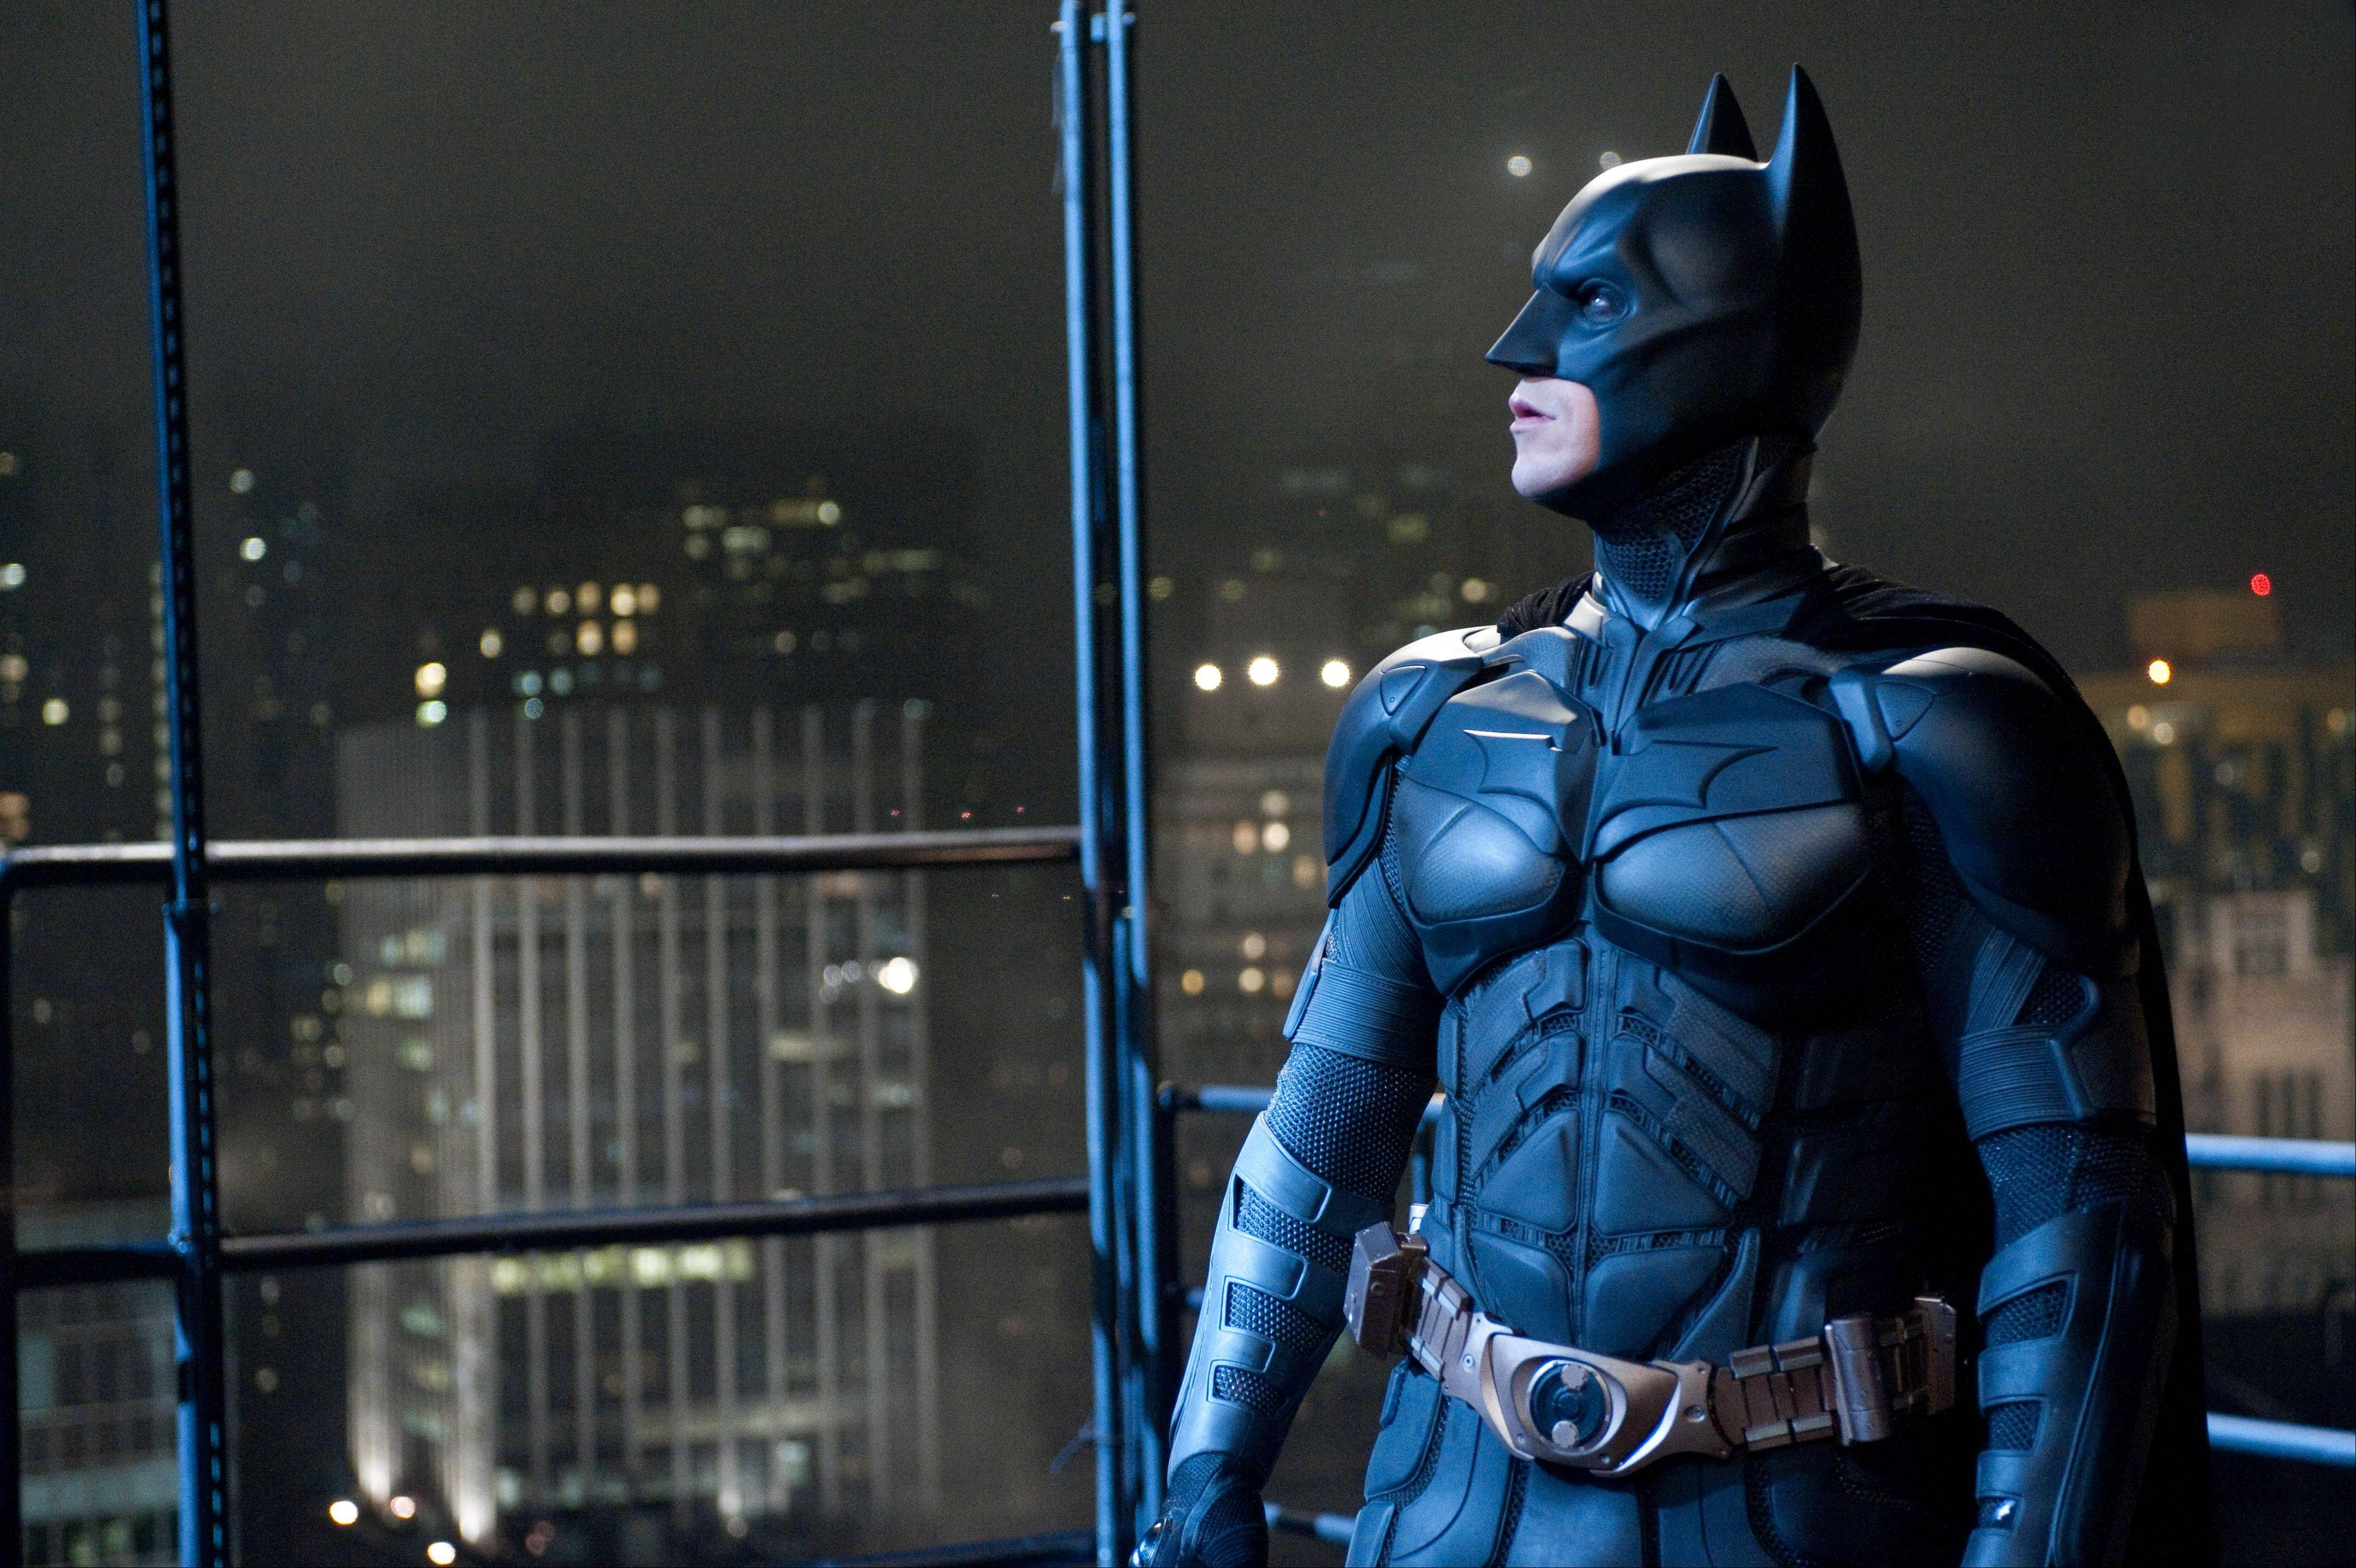 """The Dark Knight Rises"" starring Christian Bale stayed atop the box office for the second straight weekend, making just over $64 million. But it's lagging behind the numbers of its predecessor, 2008's ""The Dark Knight."""